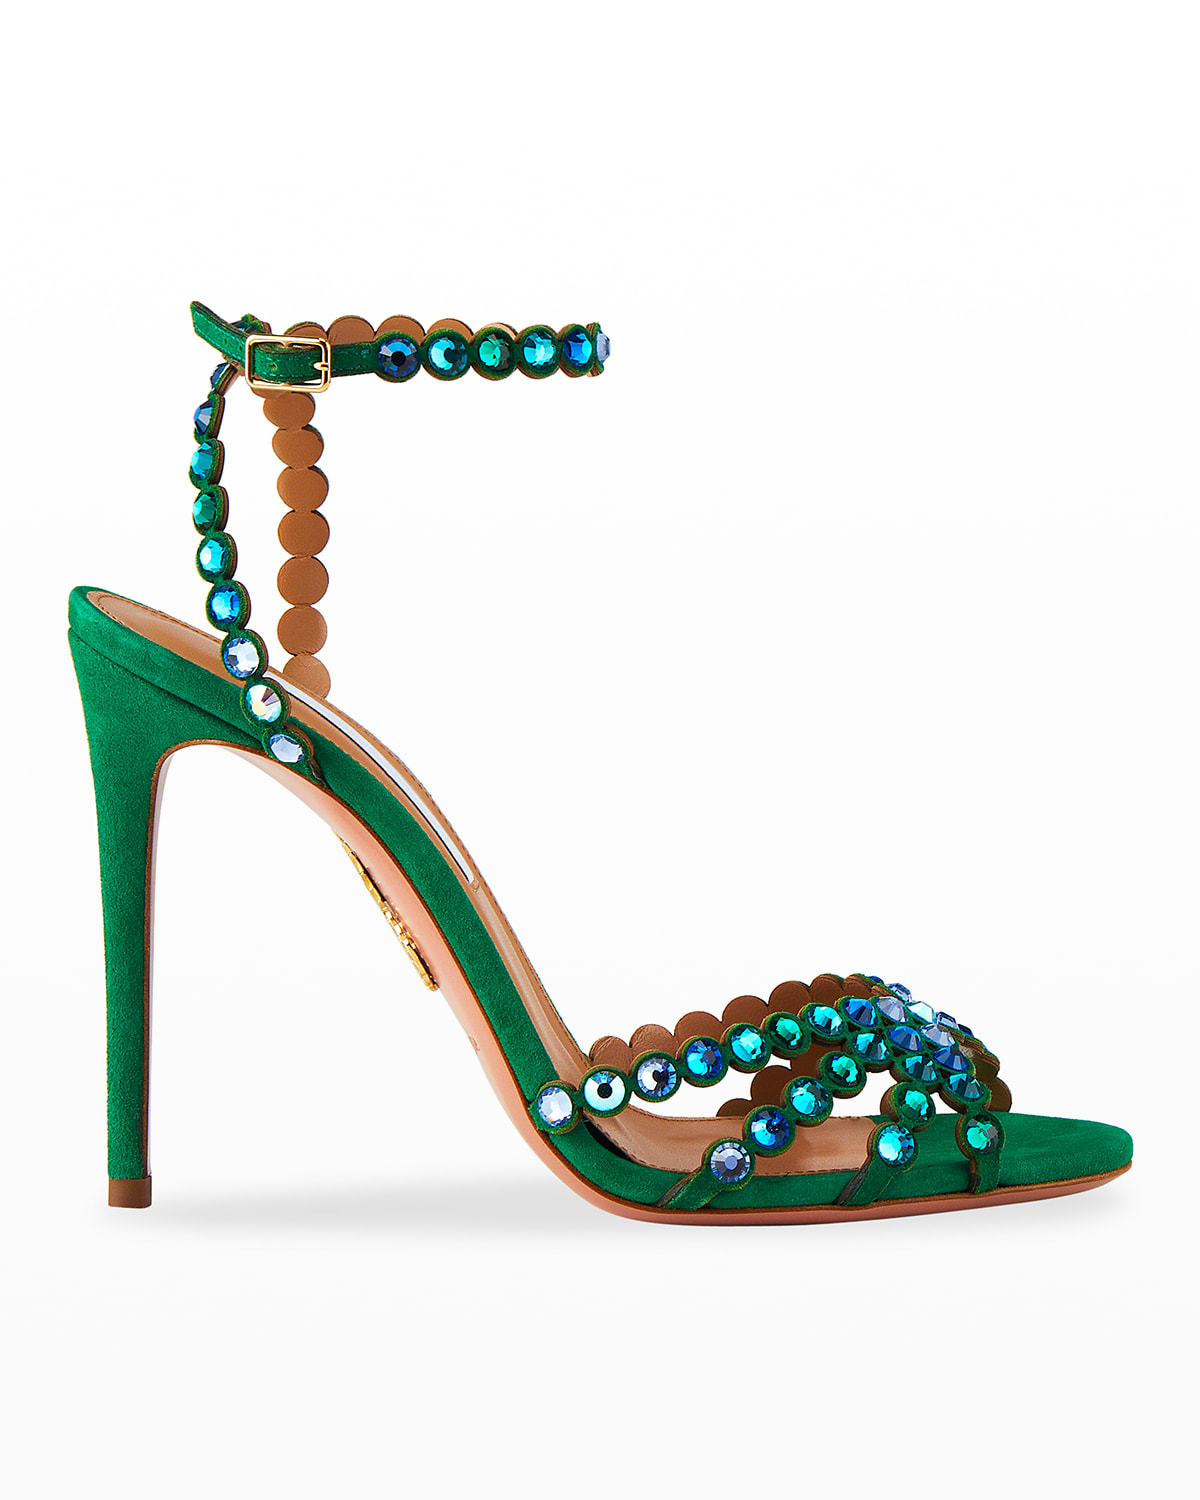 Tequila Crystal Suede Stiletto Sandals